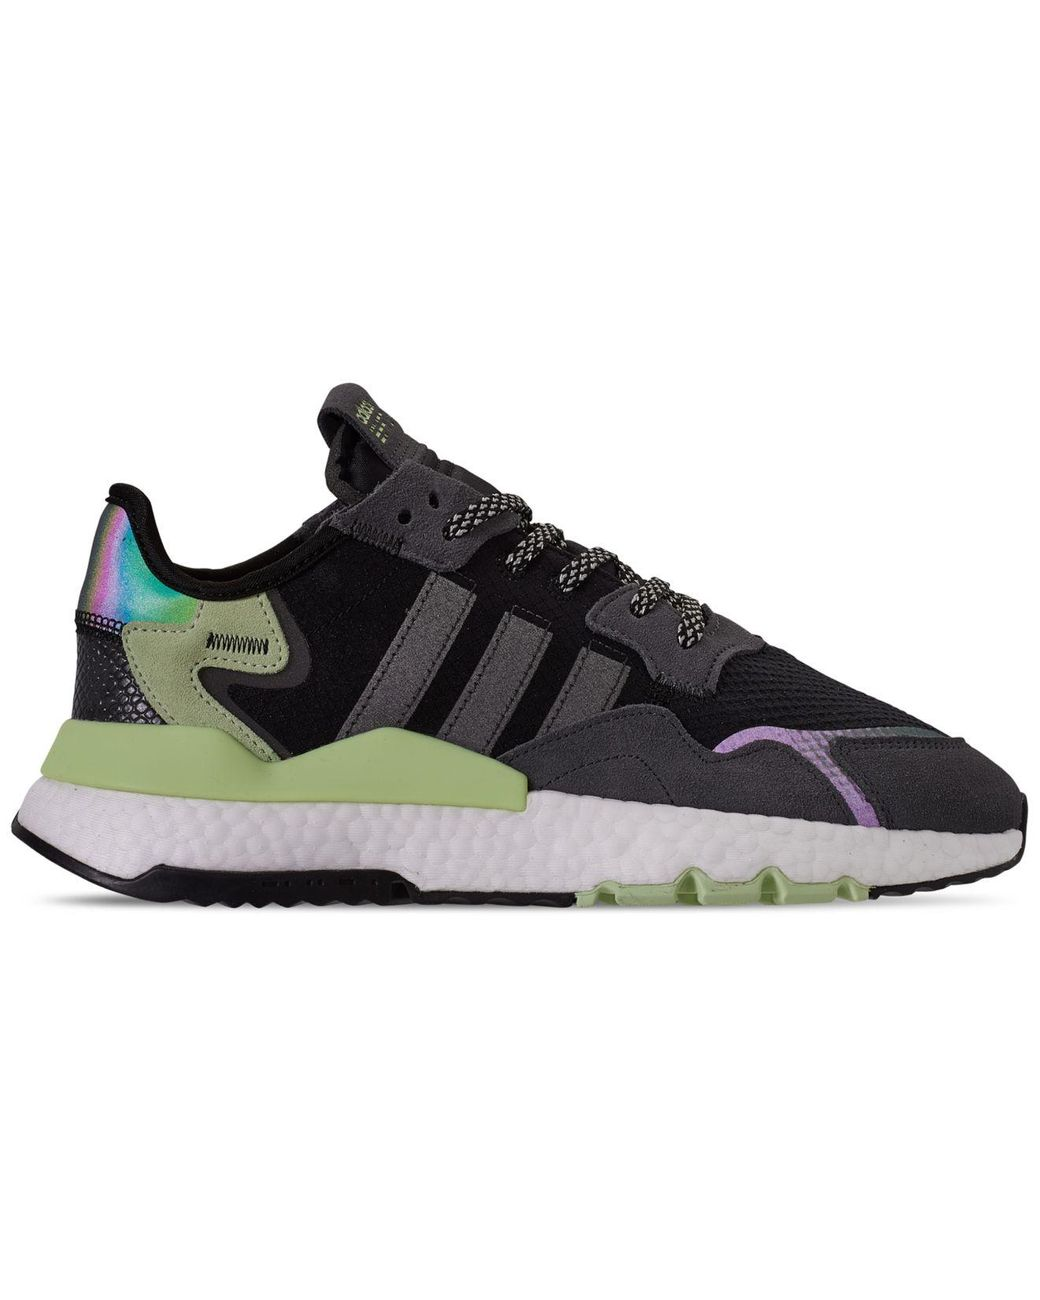 Made By Counterpoint Magazine || Adidas Nite Jogger London